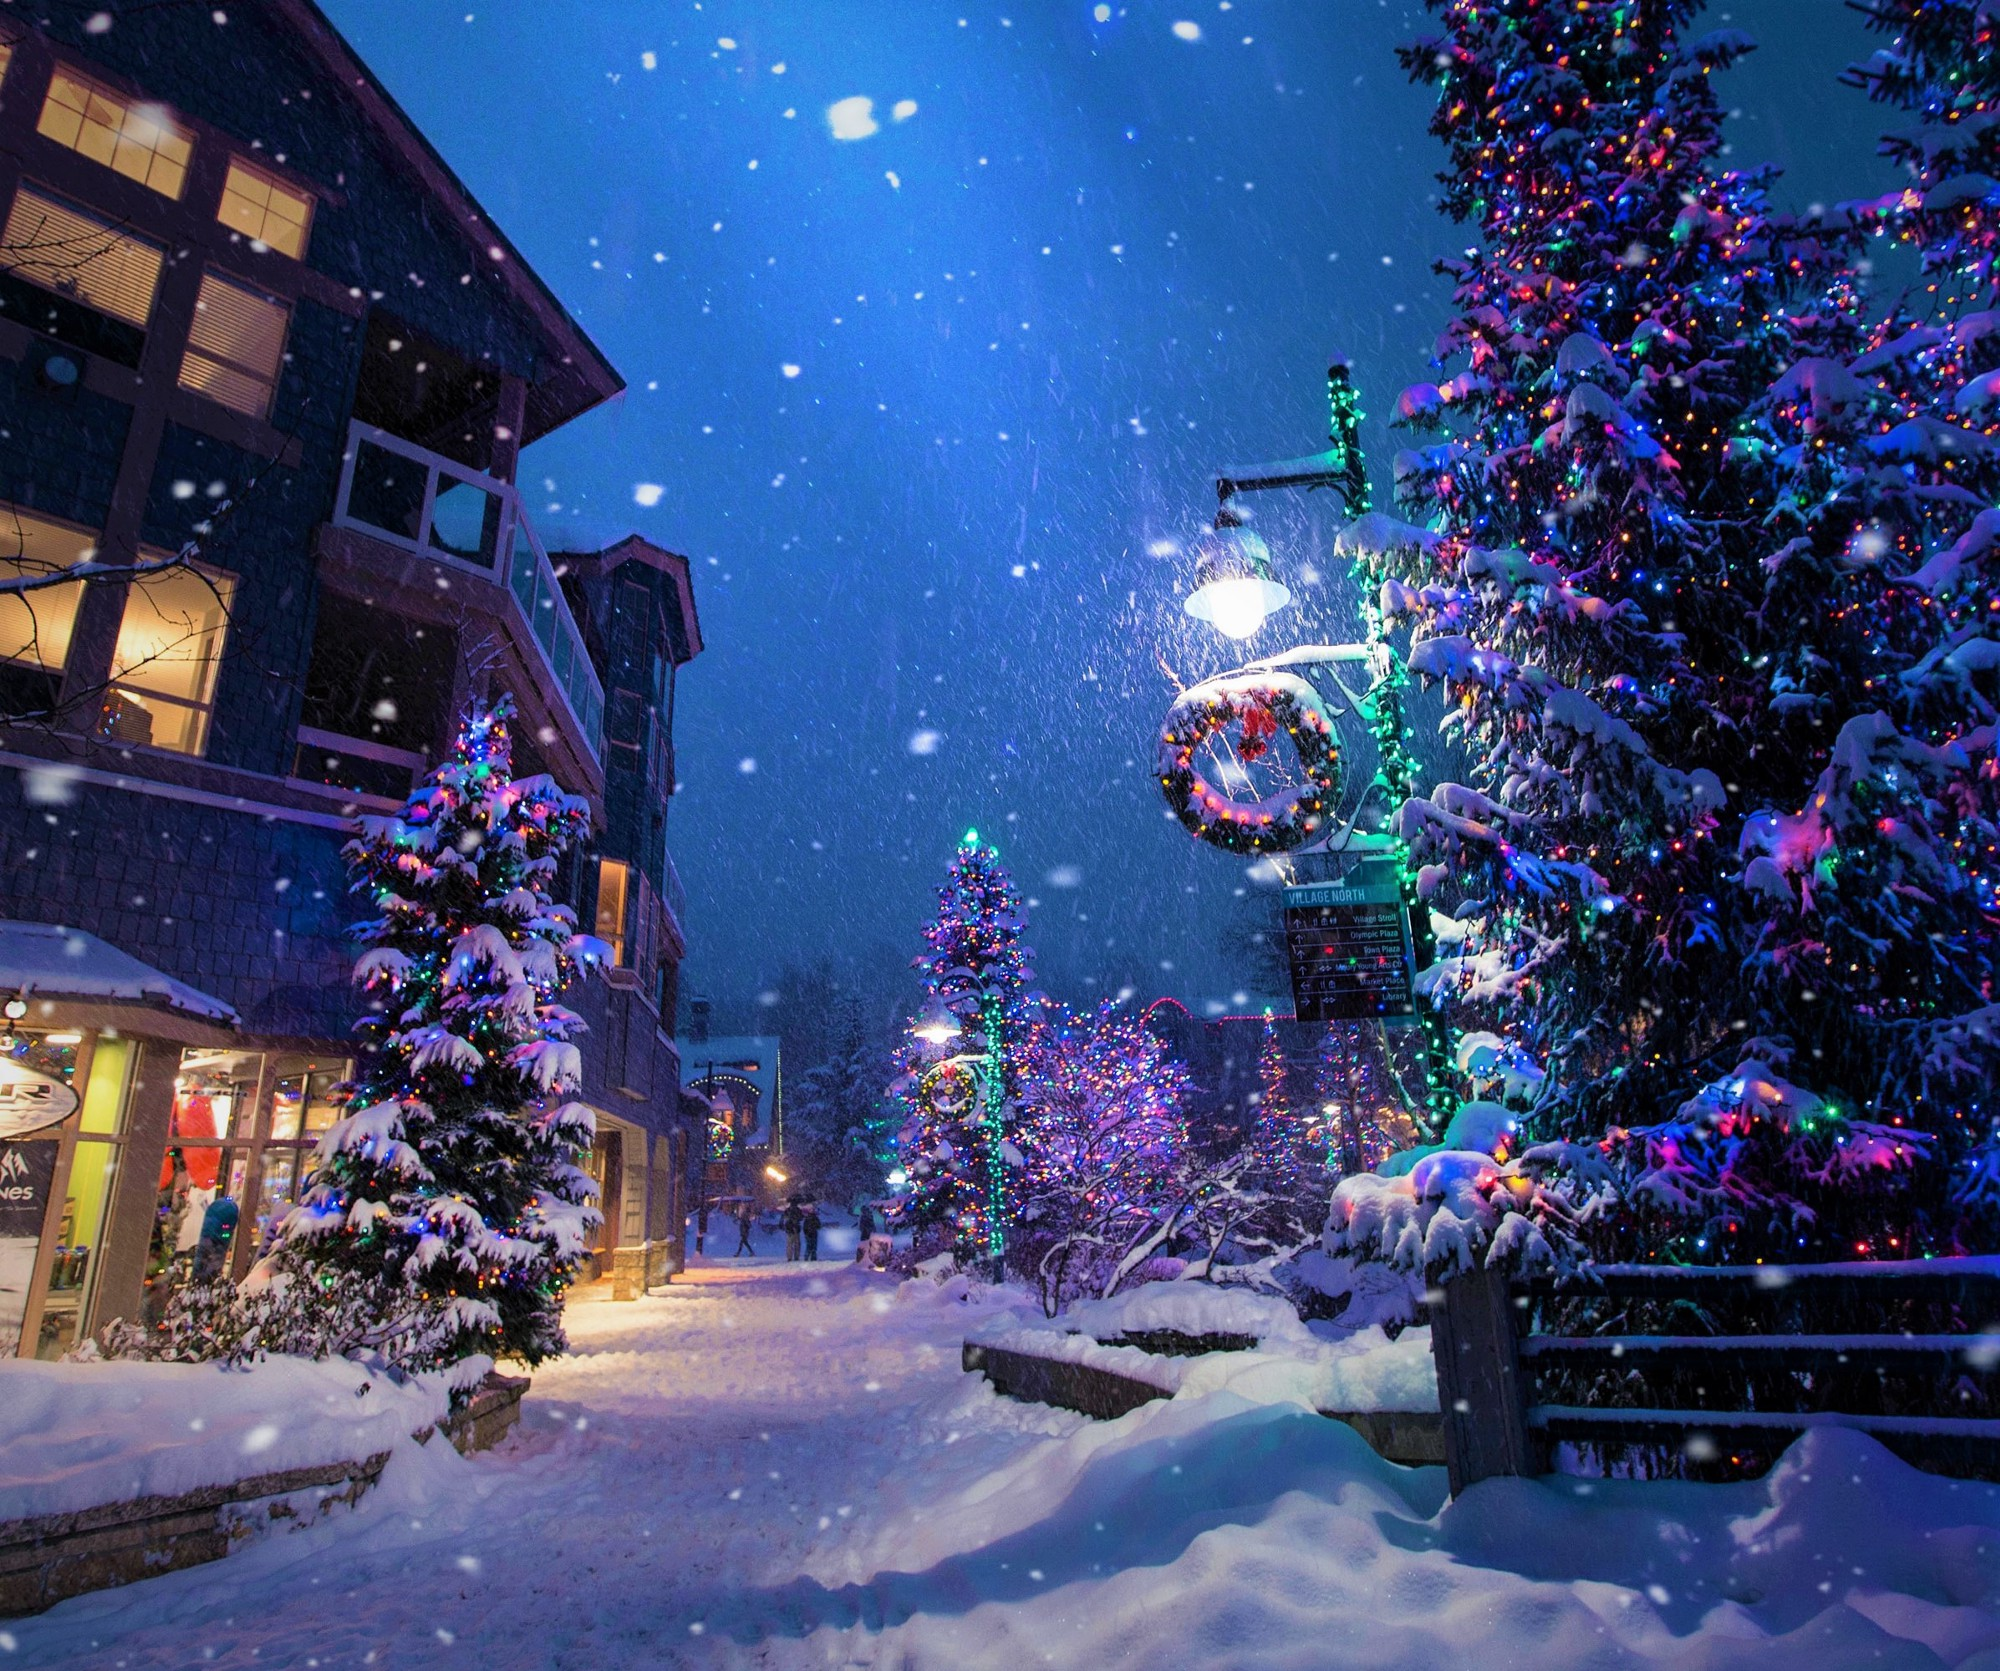 night-time outdoor holiday scene snowing street lighted trees